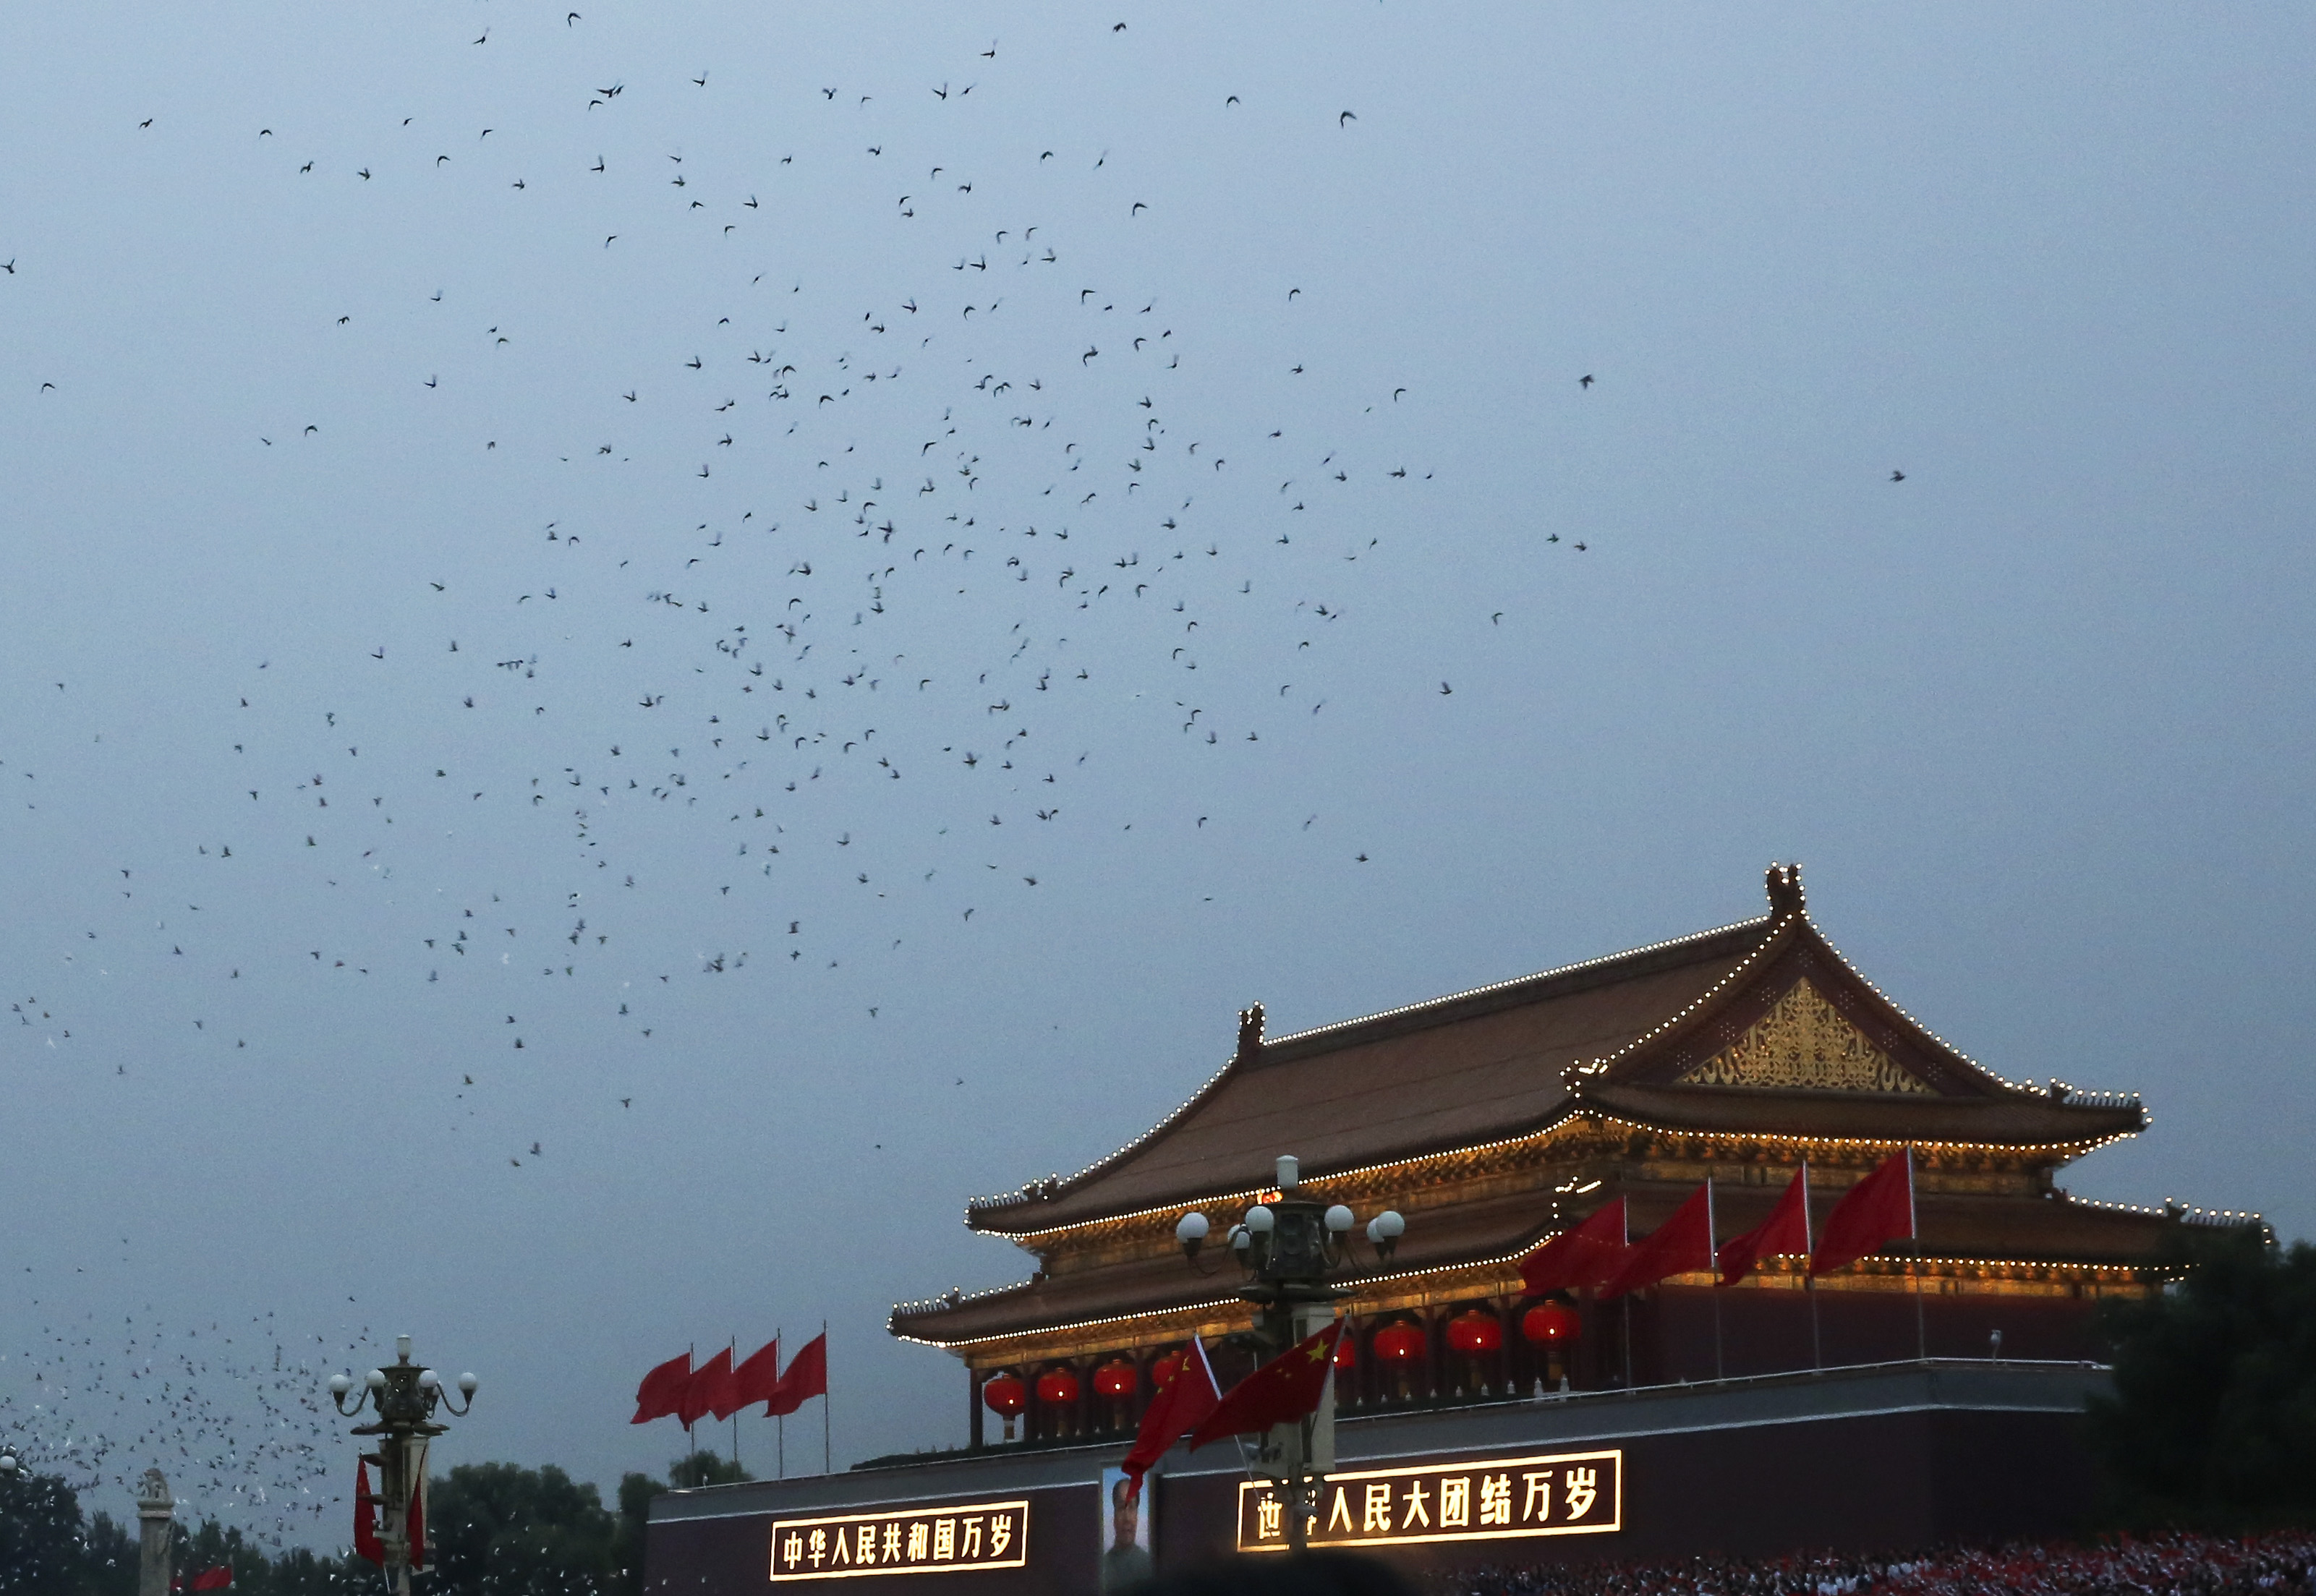 China body-searches 10K pigeons released for holiday celebration: reports